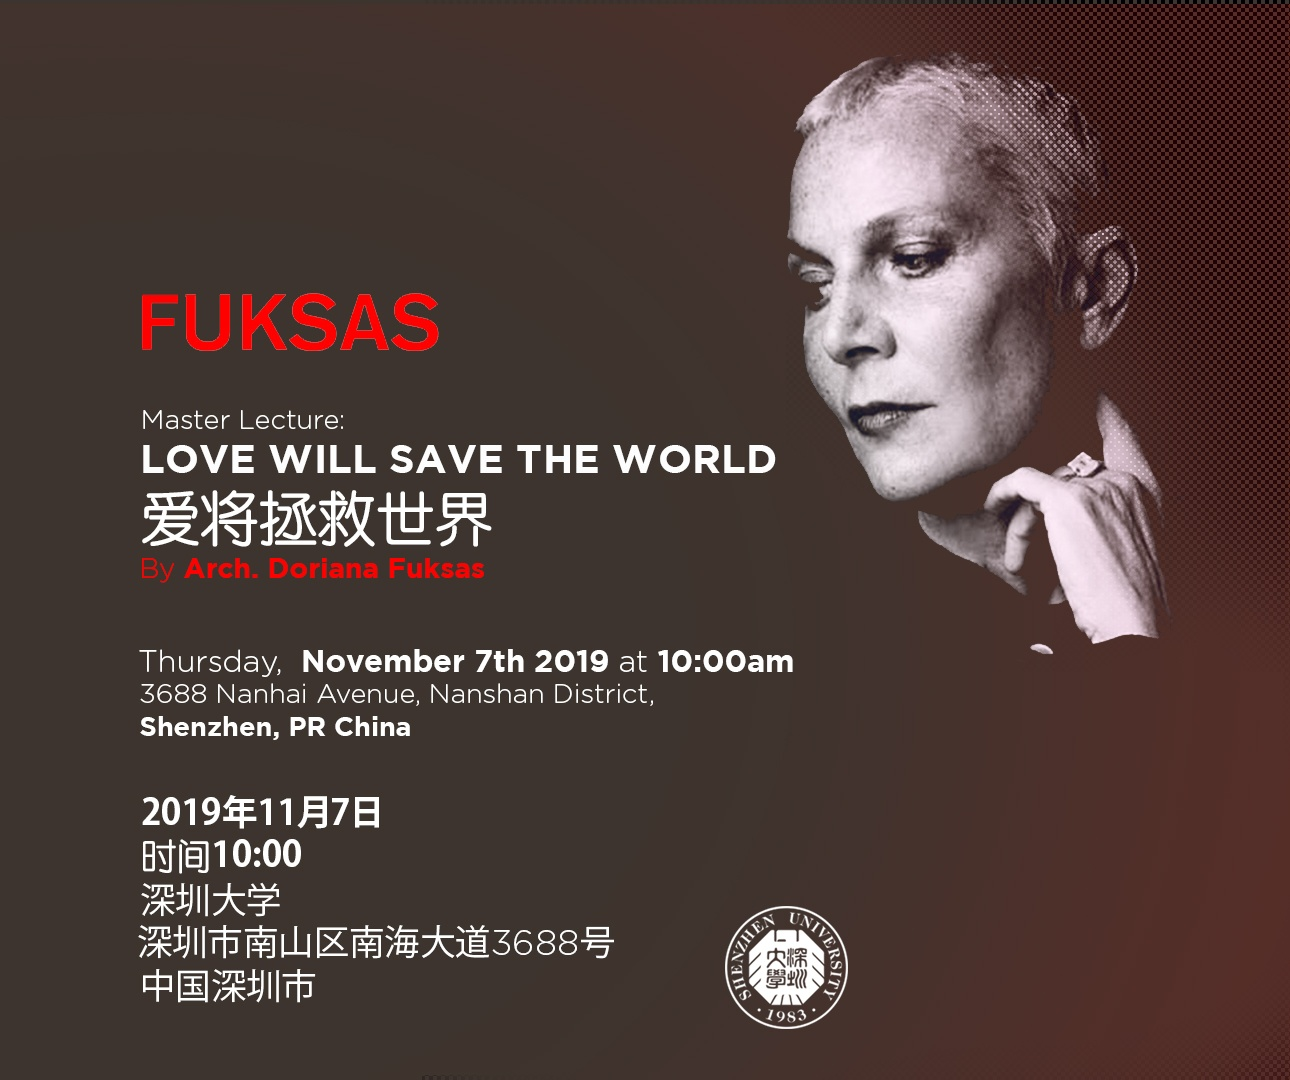 Master Lecture: Love Will Save The World At Shenzhen, PR China